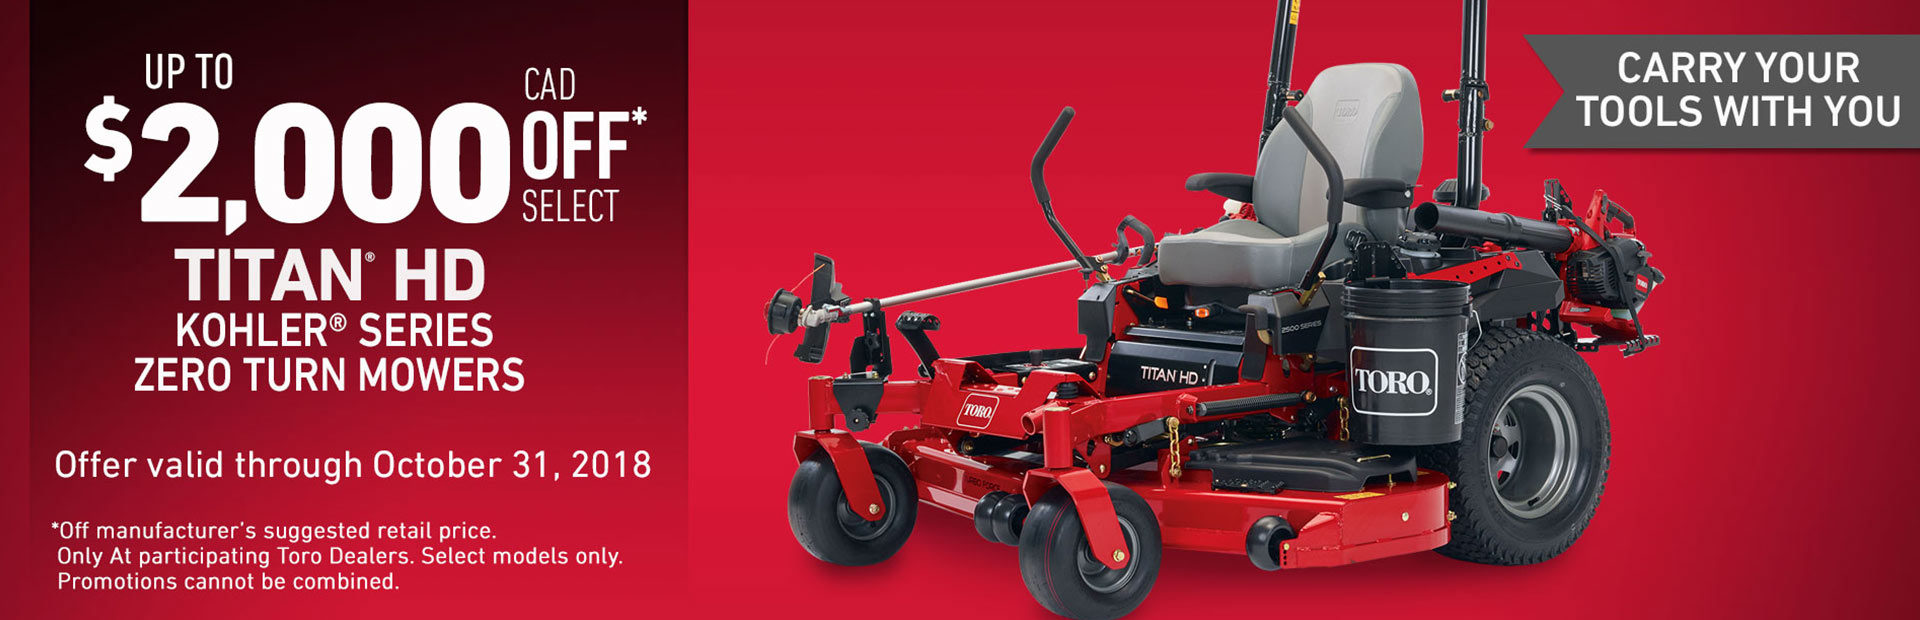 Toro: $2000 CAD OFF 2017 TITAN® HD 2000 Series Mowers